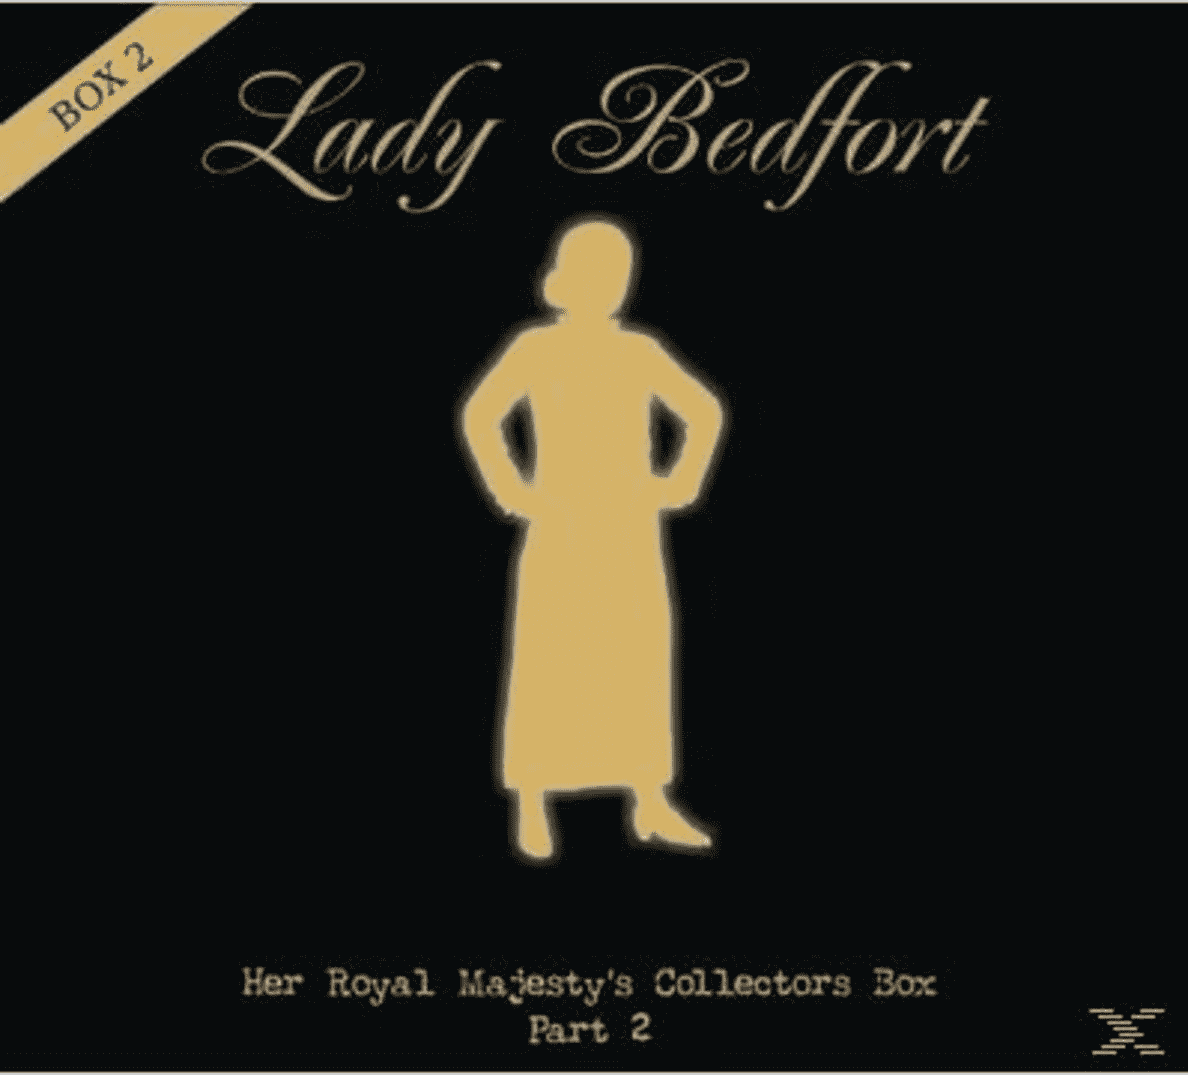 Lady Bedfort: Collectors Box - Part 2 - 3 CD - Krimi/Thriller